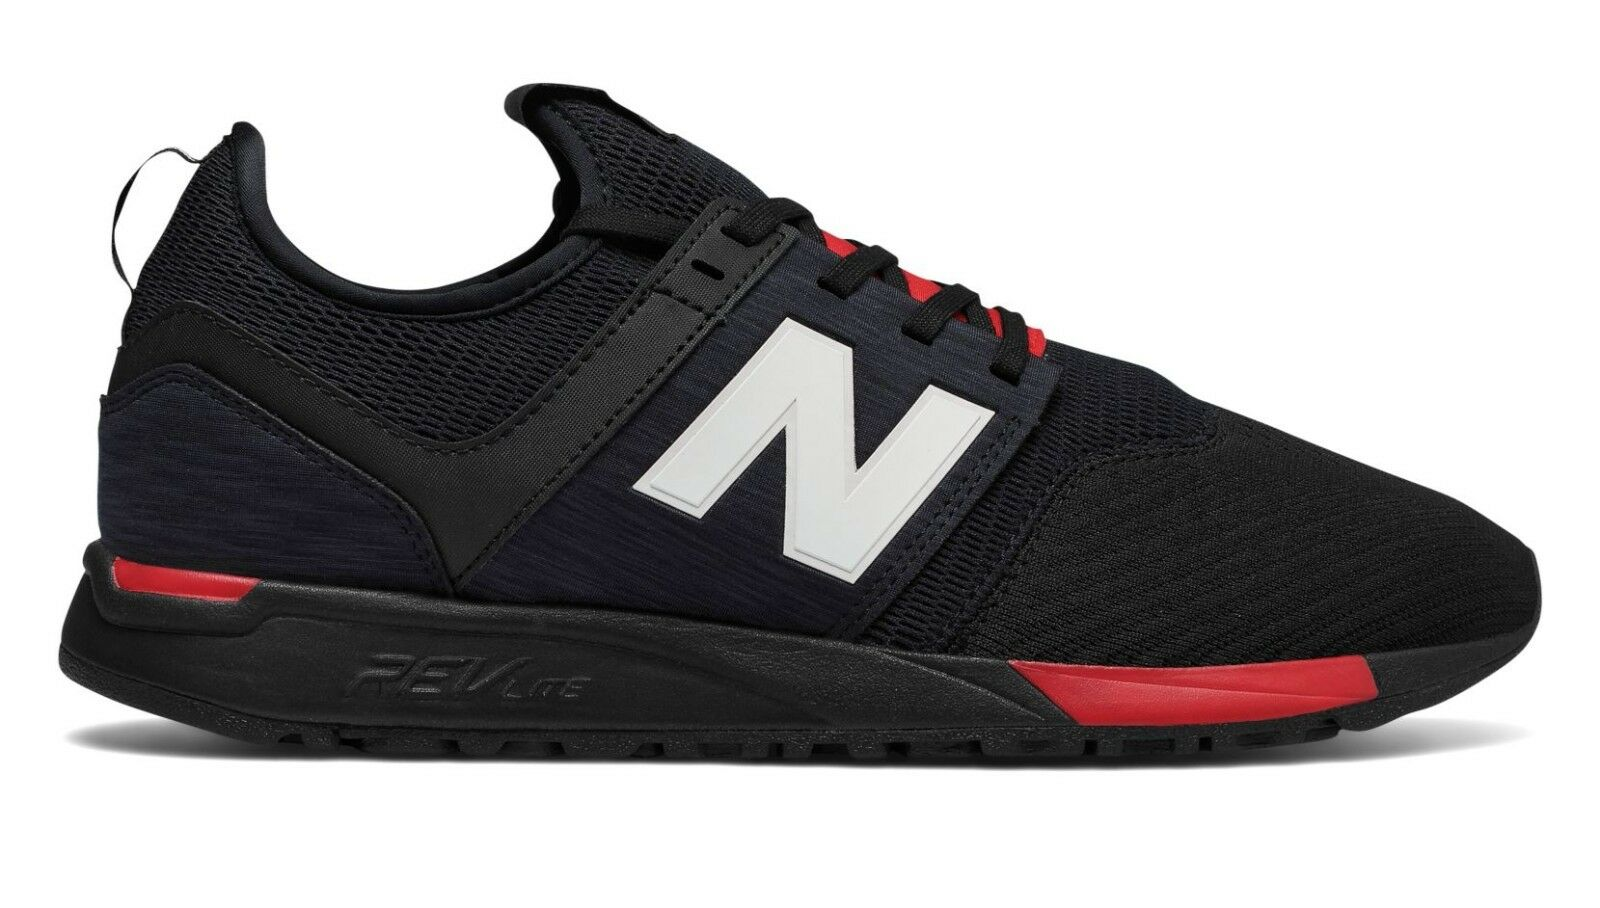 New Balance Men's 247 CLASSIC shoes Black Red MRL247BC c